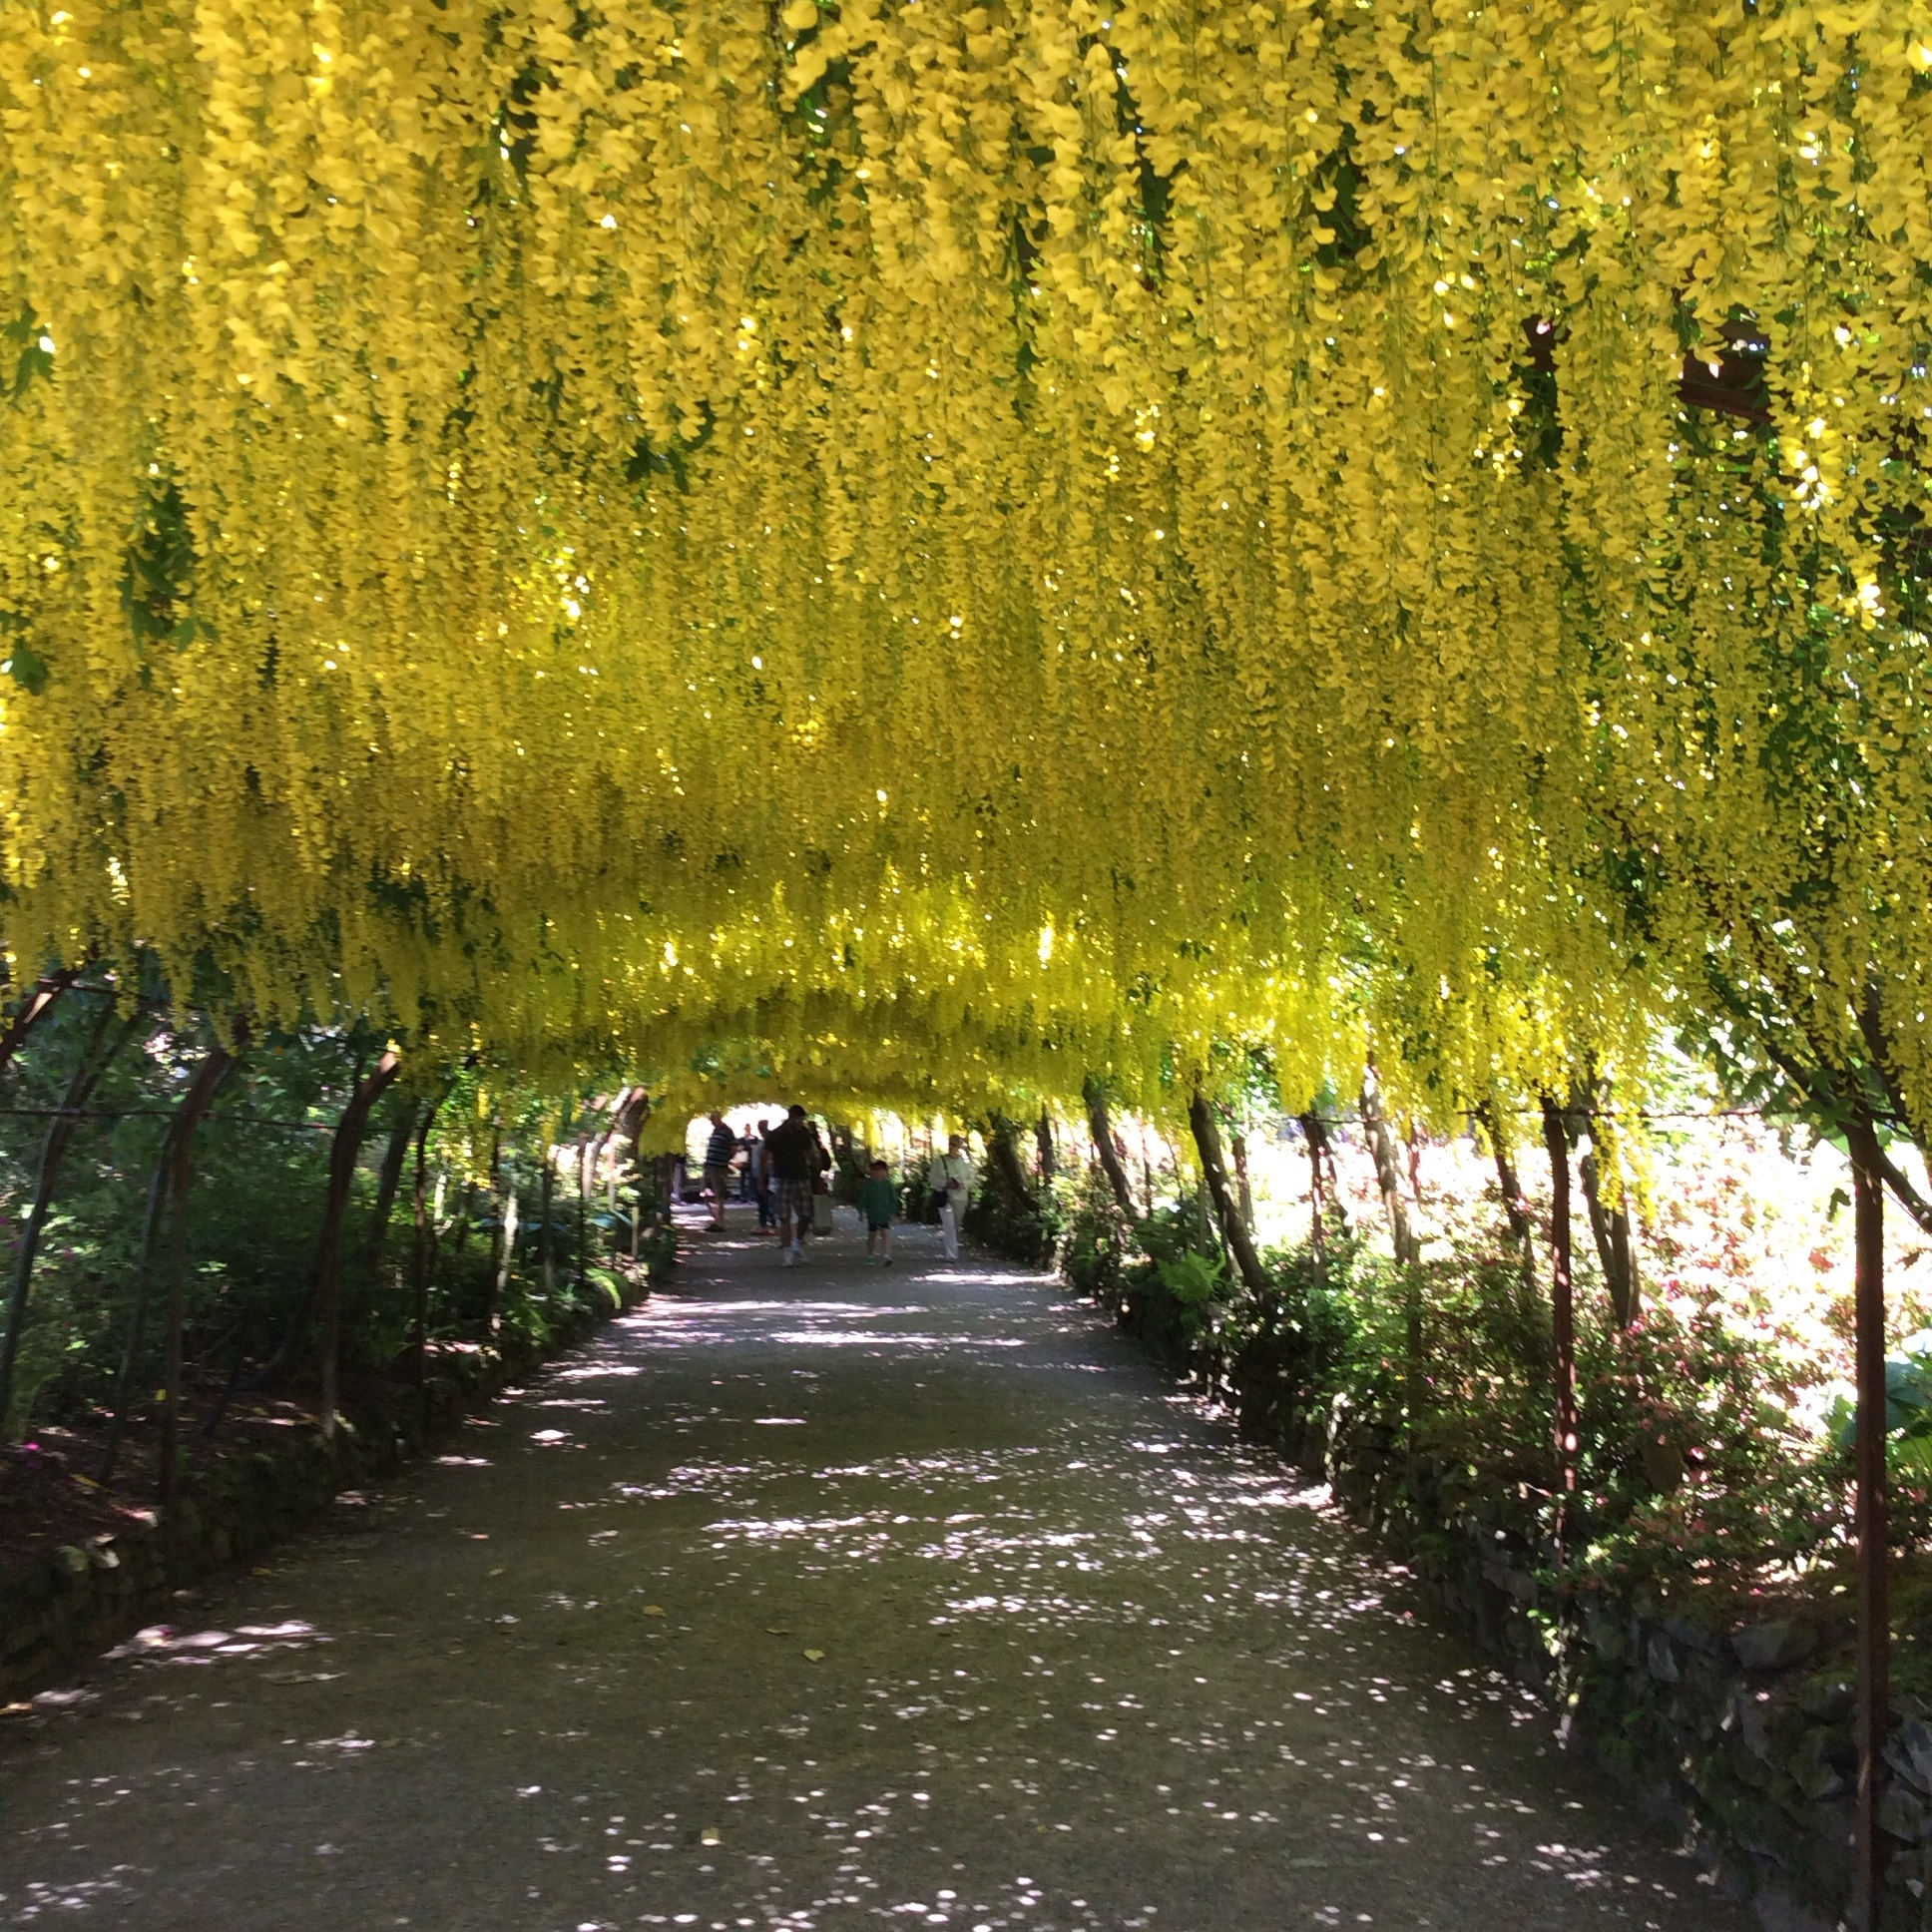 Inspiring Wordless Wednesday  Laburnum Arch Bodnant Gardens  Views From  With Fascinating Laburnum Arch  Bodnant Garden N Wales With Awesome Ladies Gardening Tools Also Patio Gardens Pictures In Addition Cast Aluminum Garden Furniture And Simple Garden Ideas As Well As In The Night Garden Set Additionally Coloured Garden Pebbles From Viewsfrommygardenbenchwordpresscom With   Fascinating Wordless Wednesday  Laburnum Arch Bodnant Gardens  Views From  With Awesome Laburnum Arch  Bodnant Garden N Wales And Inspiring Ladies Gardening Tools Also Patio Gardens Pictures In Addition Cast Aluminum Garden Furniture From Viewsfrommygardenbenchwordpresscom